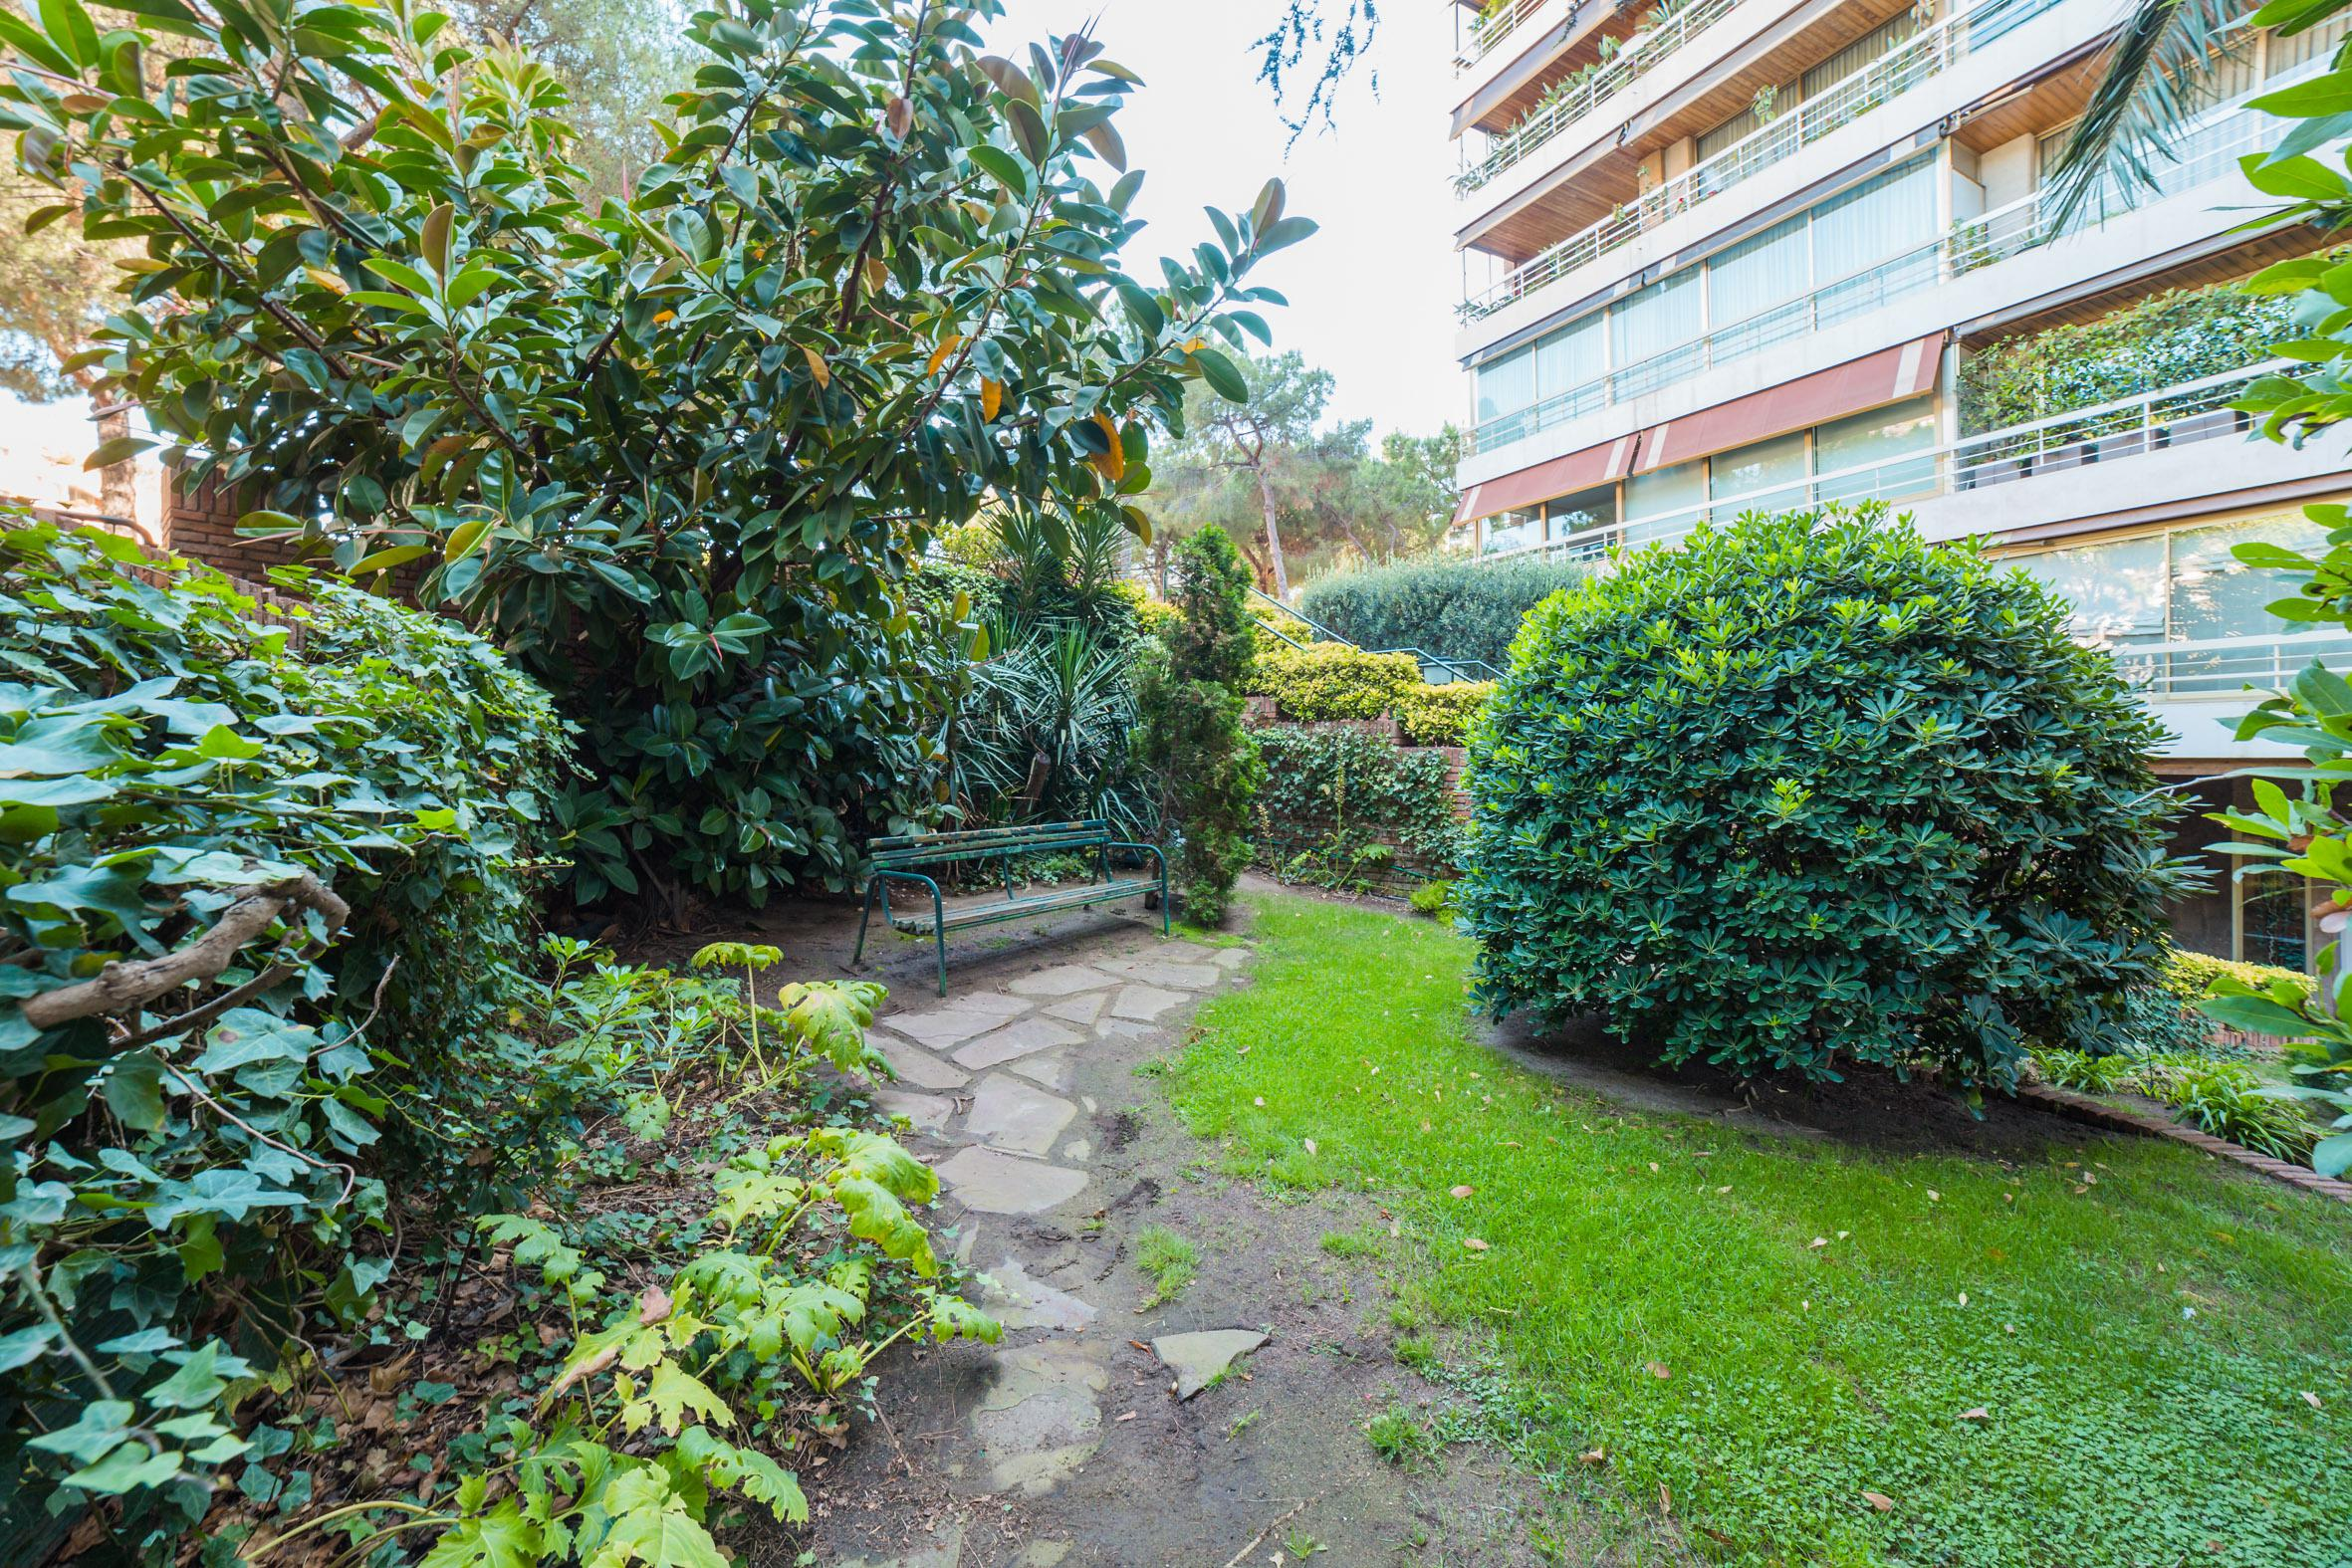 248988 Flat for sale in Les Corts, Les Corts 36